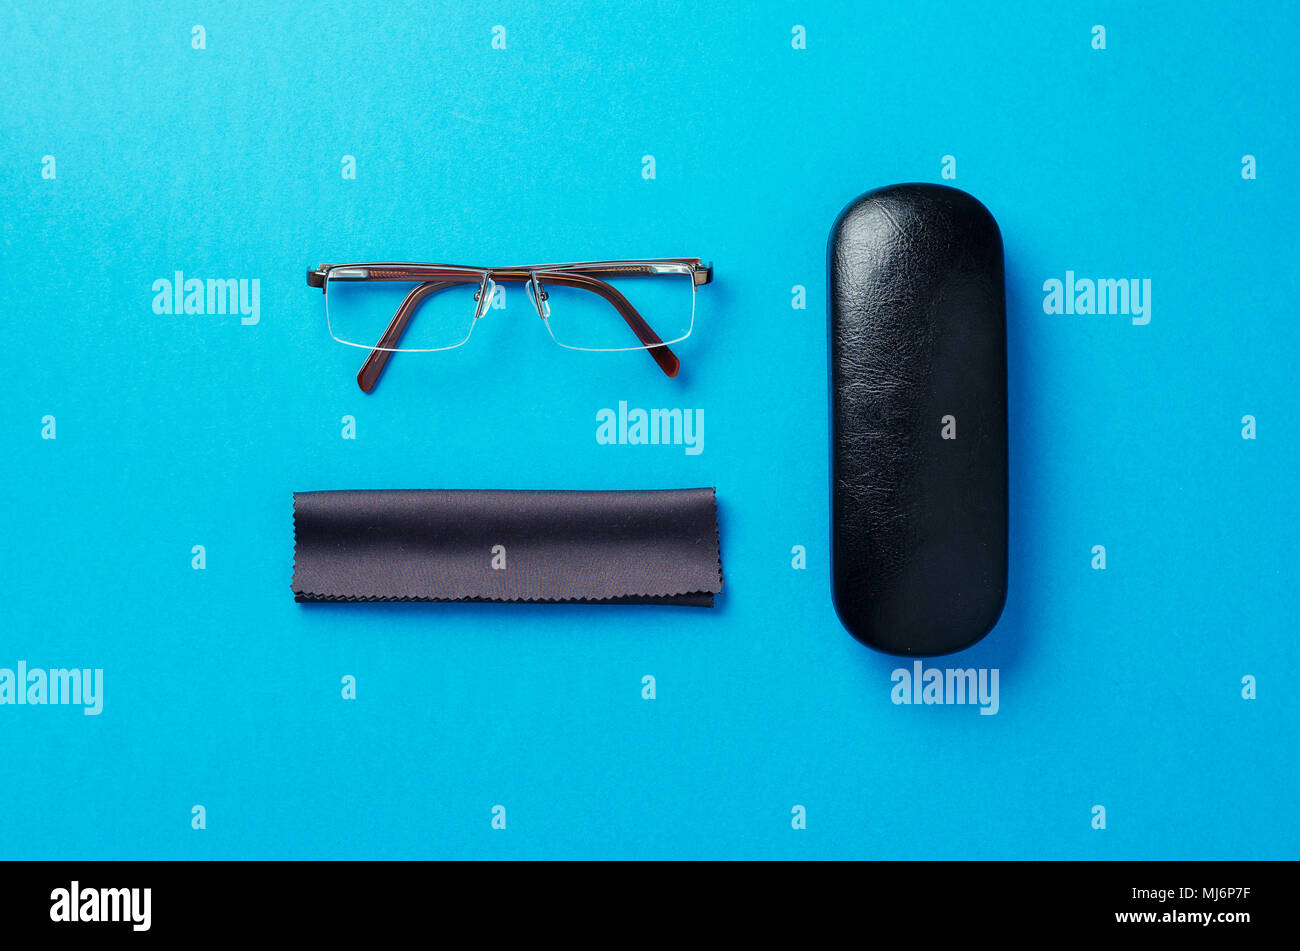 Eye glasses, case and fabric organized over blue background, above view. - Stock Image